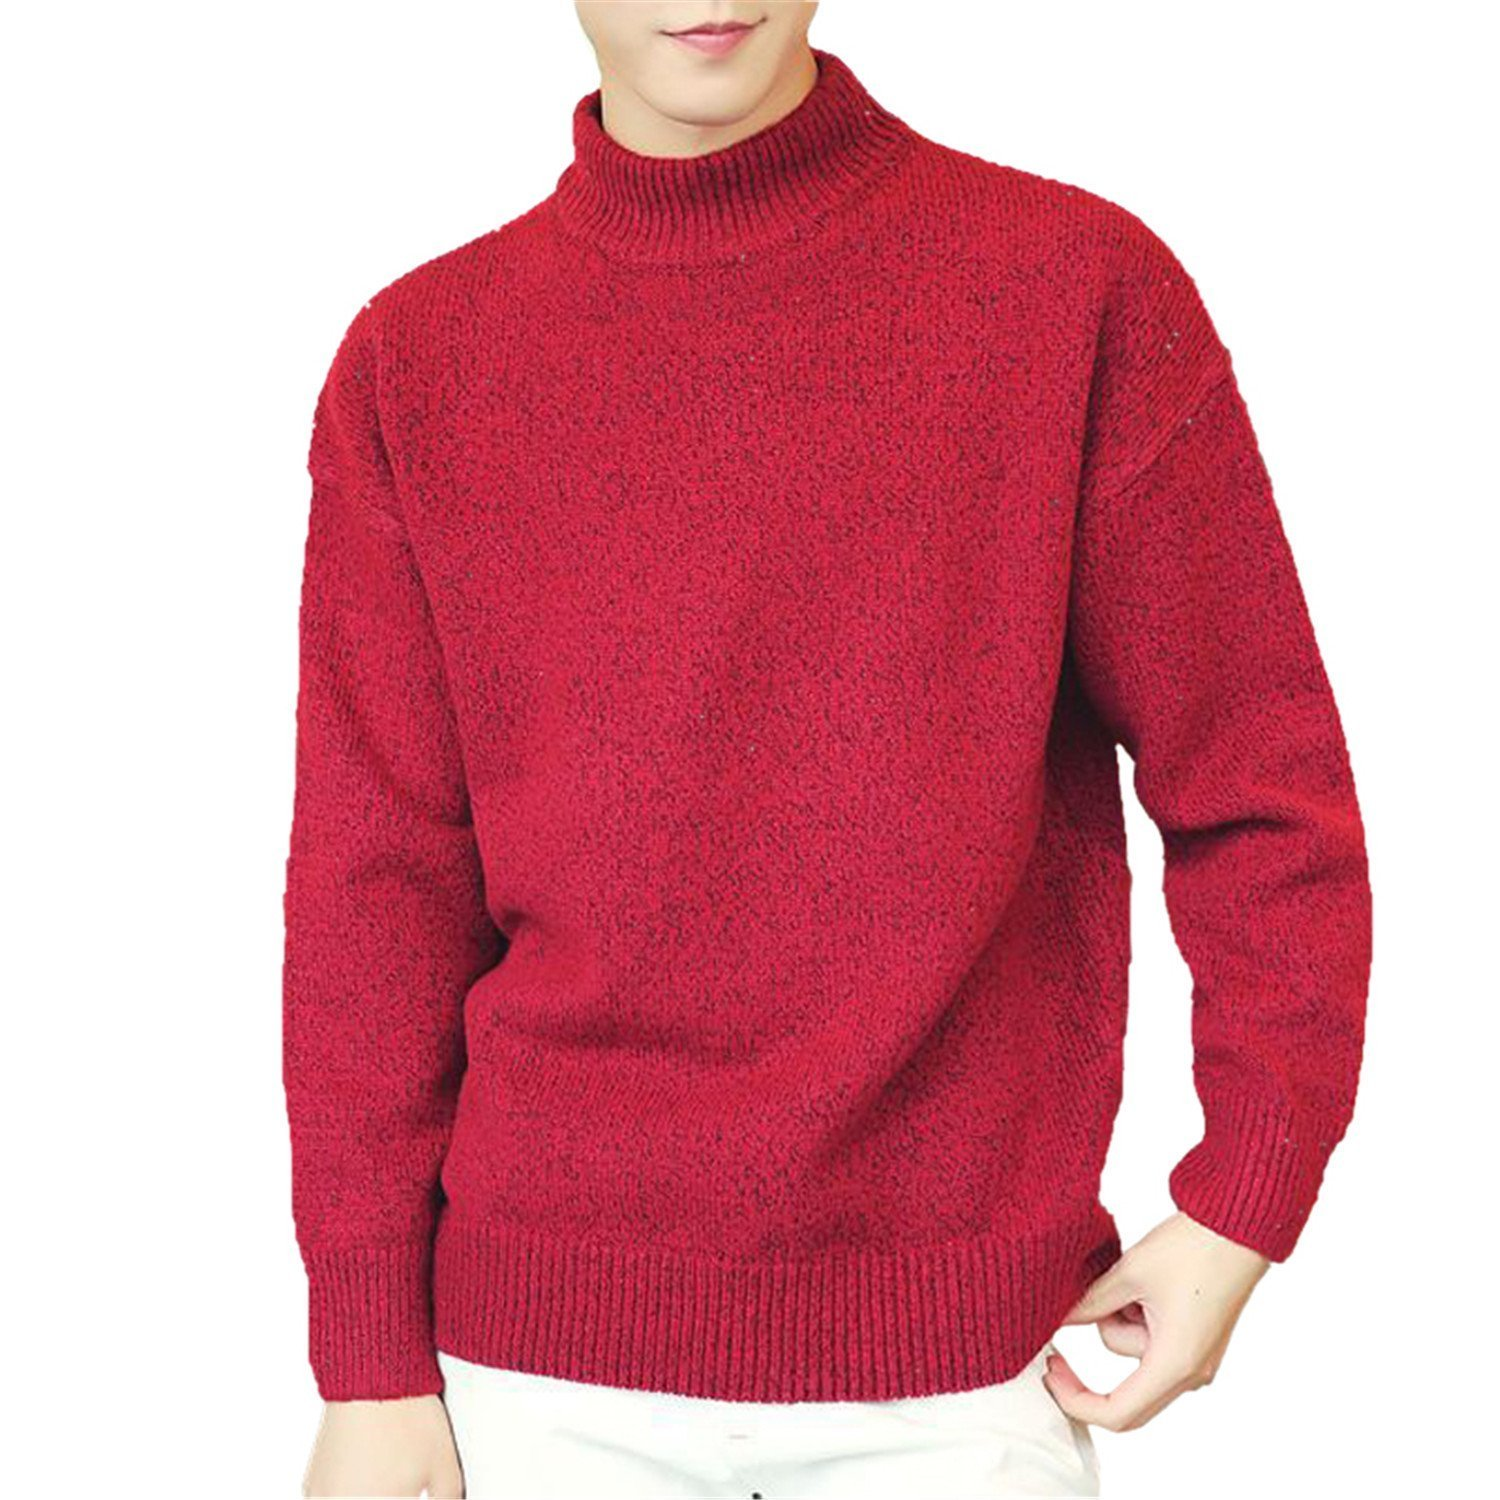 Toping Fine Solid Sweater Men Half-Turtleneck Collar Long Sleeve Pullover Sweaters Knitted Sweaters M-XXXL RedX-Large